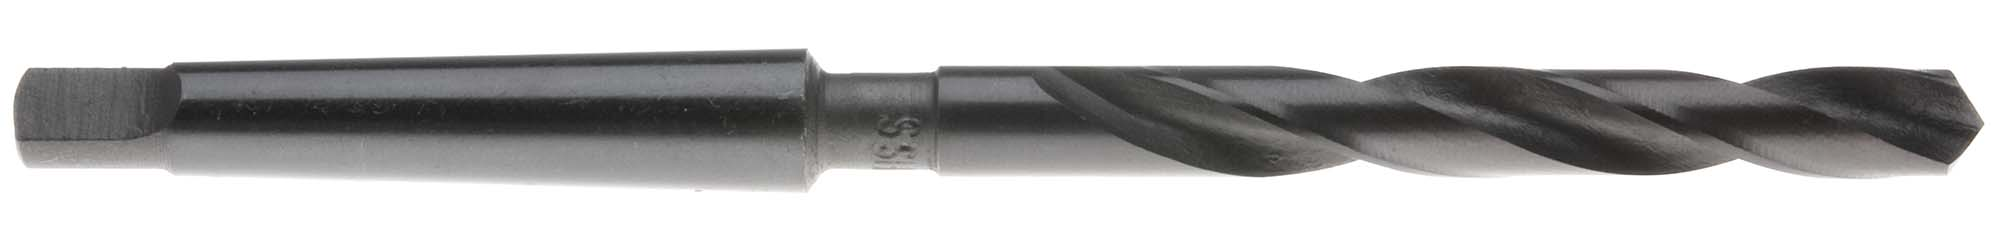 28 mm Taper Shank Drill, High Speed Steel